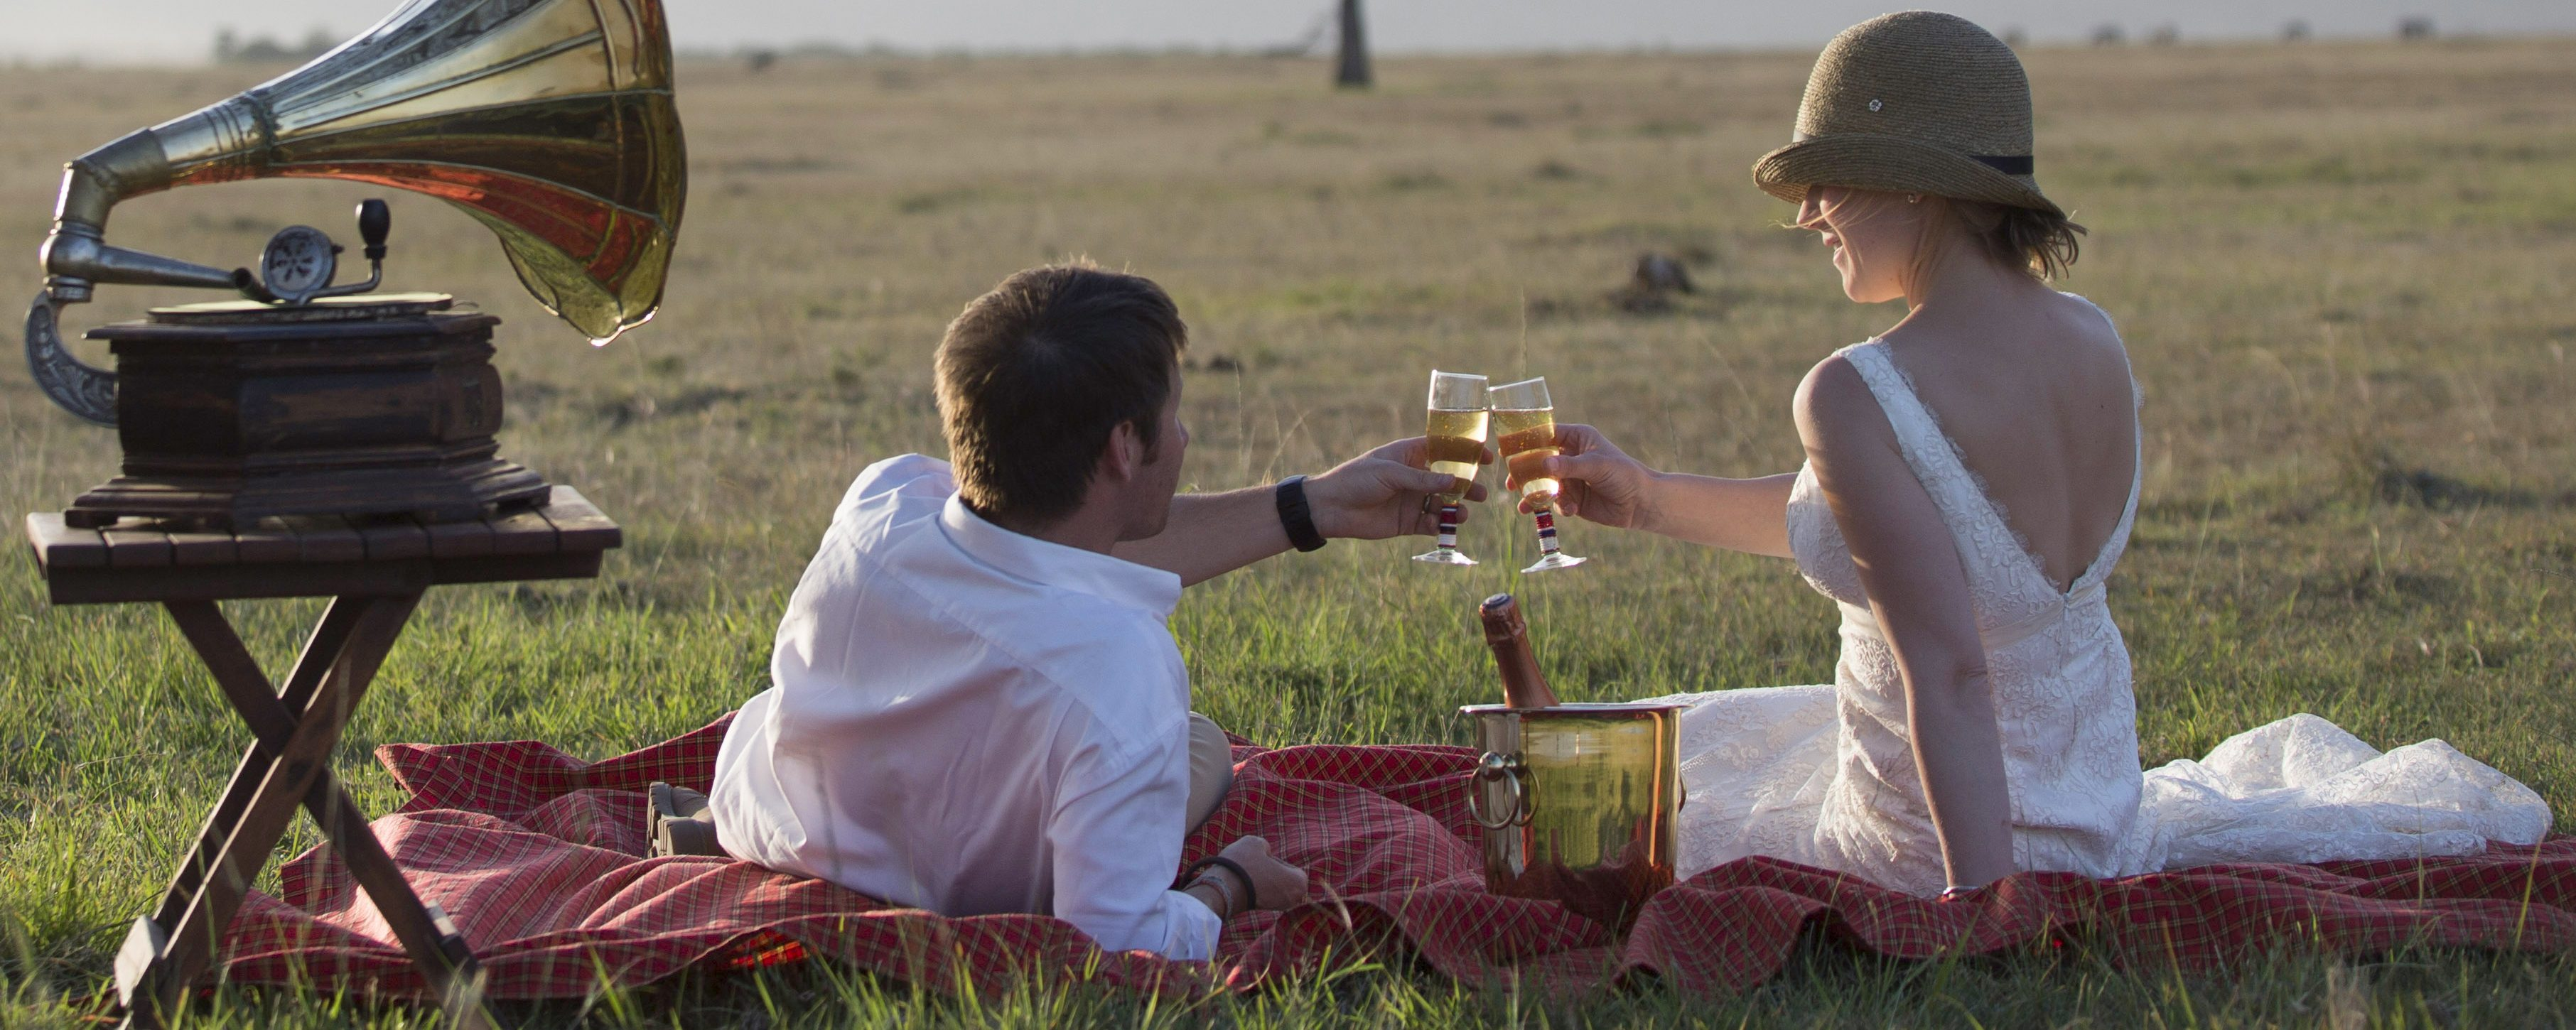 A newlywed couple toast with champagne in the Masai Mara, Kenya